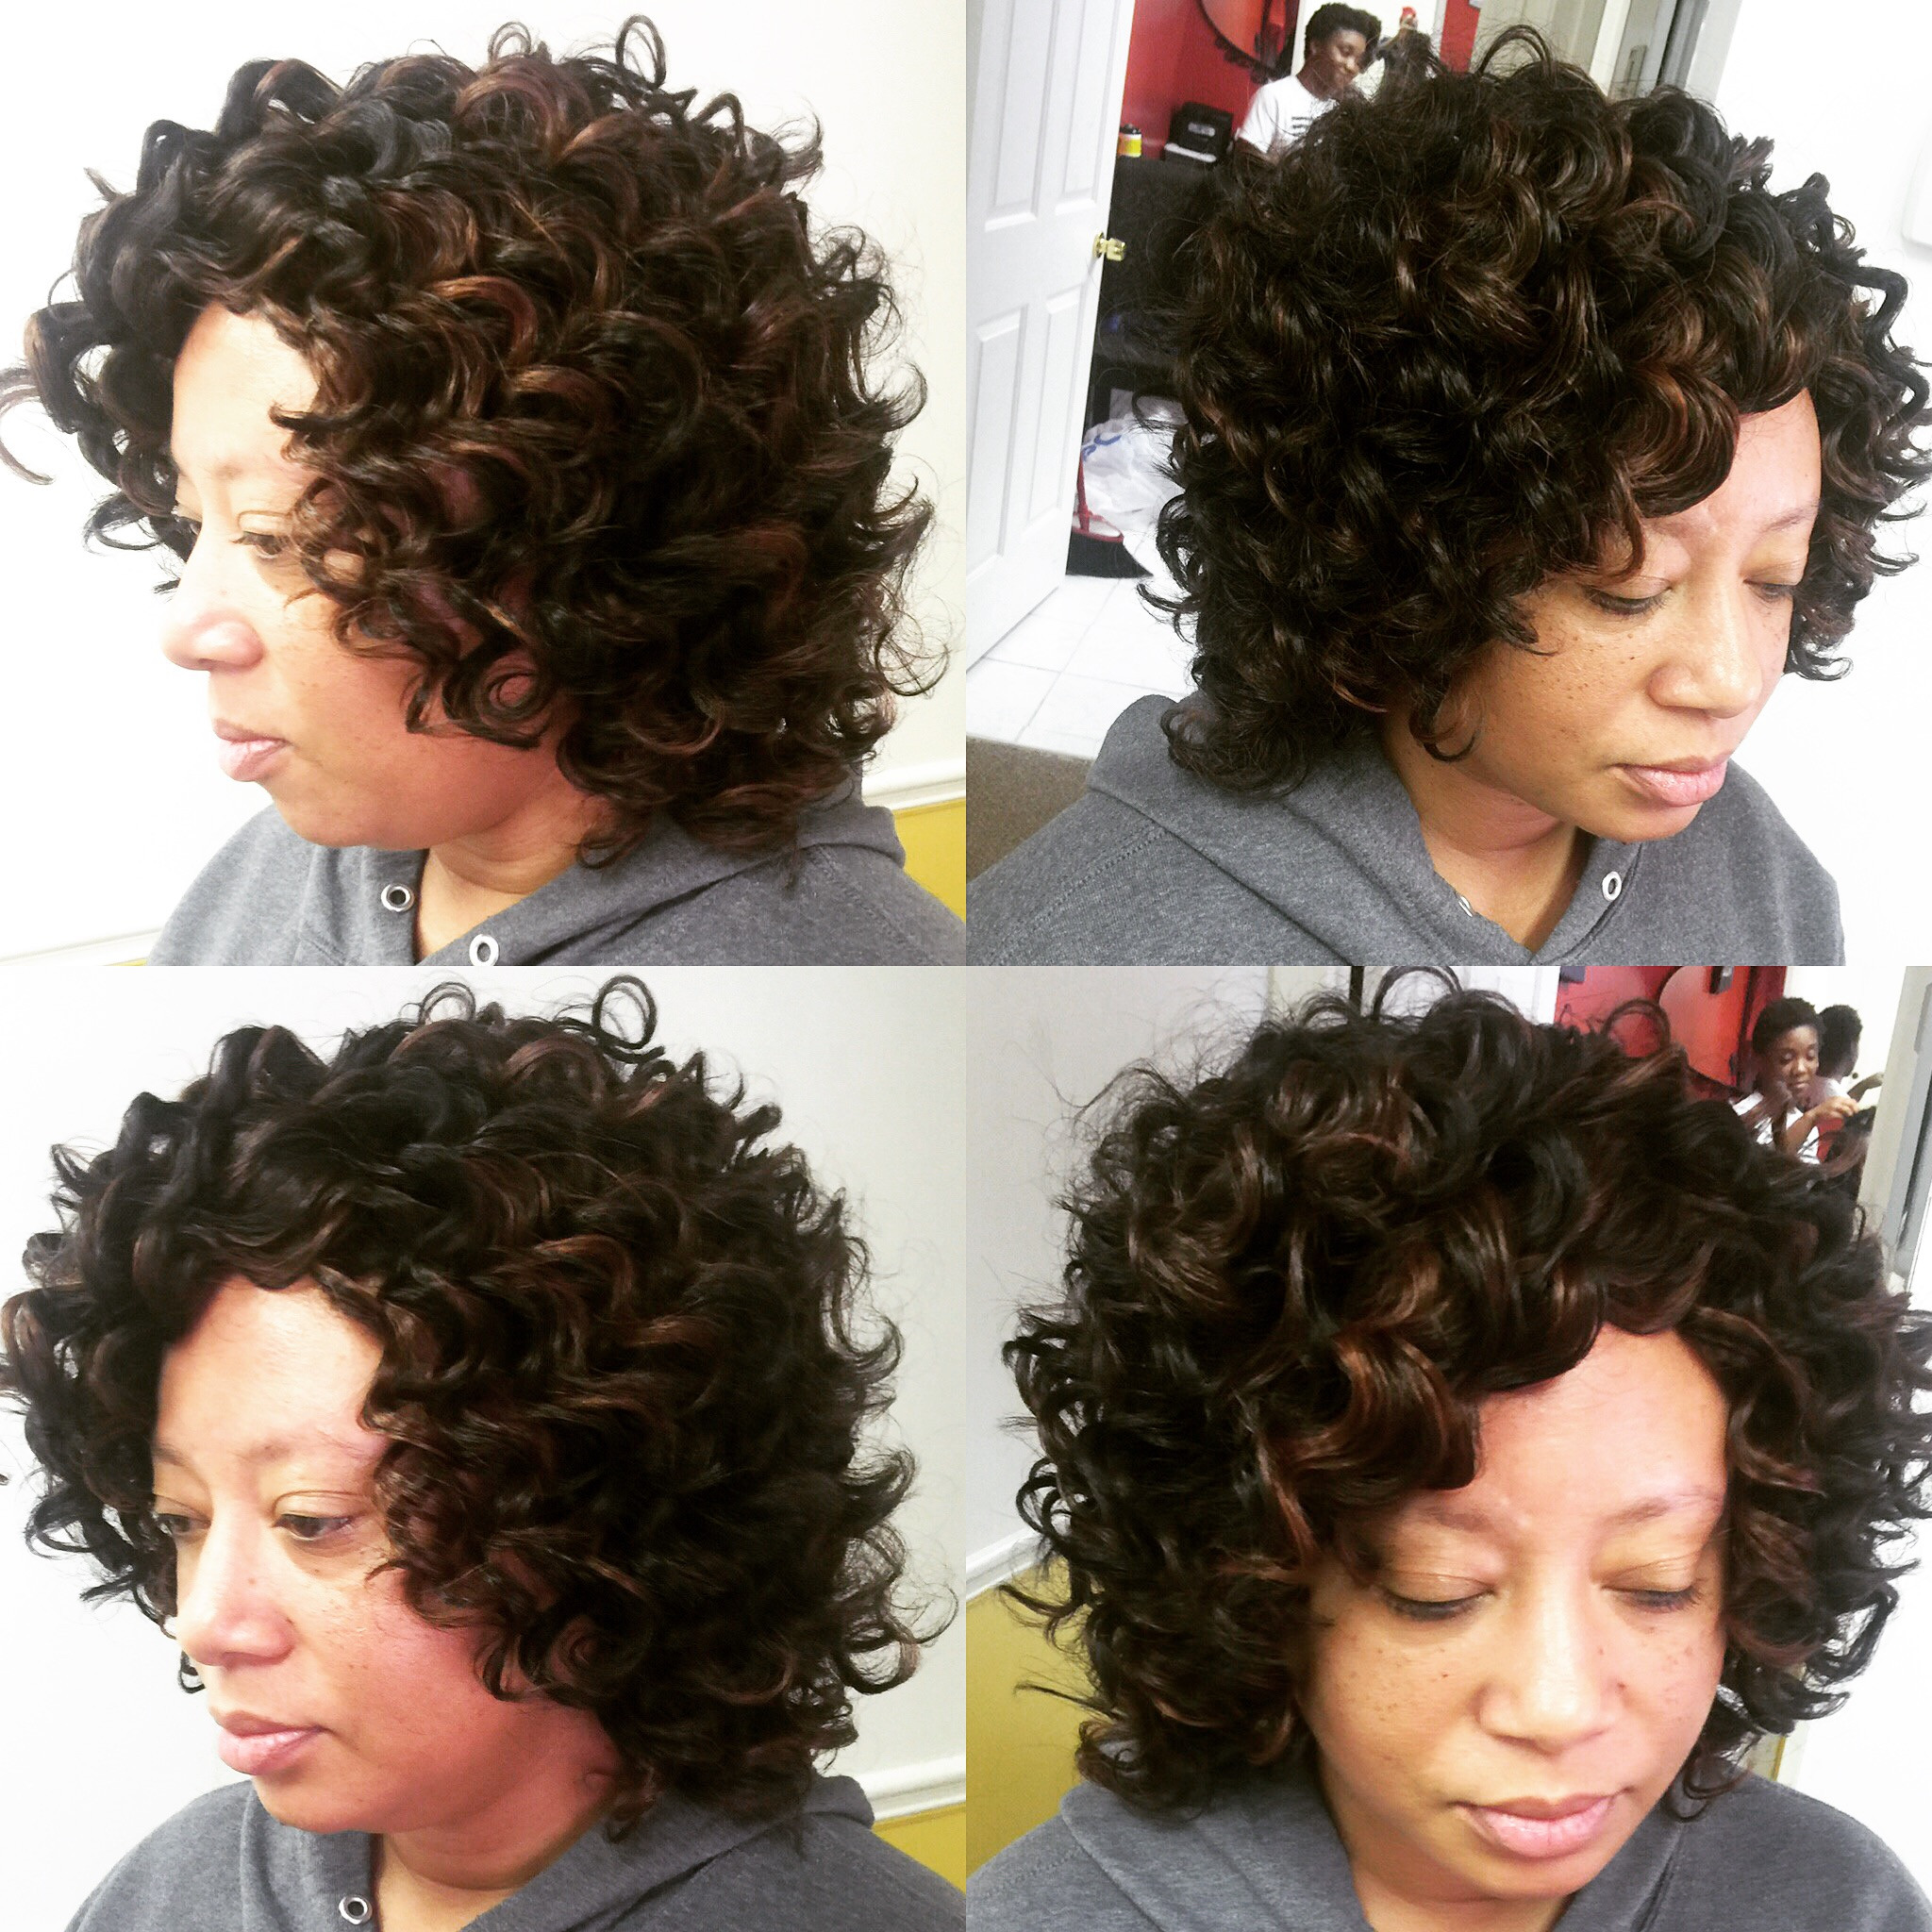 Full Sew In $100 up to $150